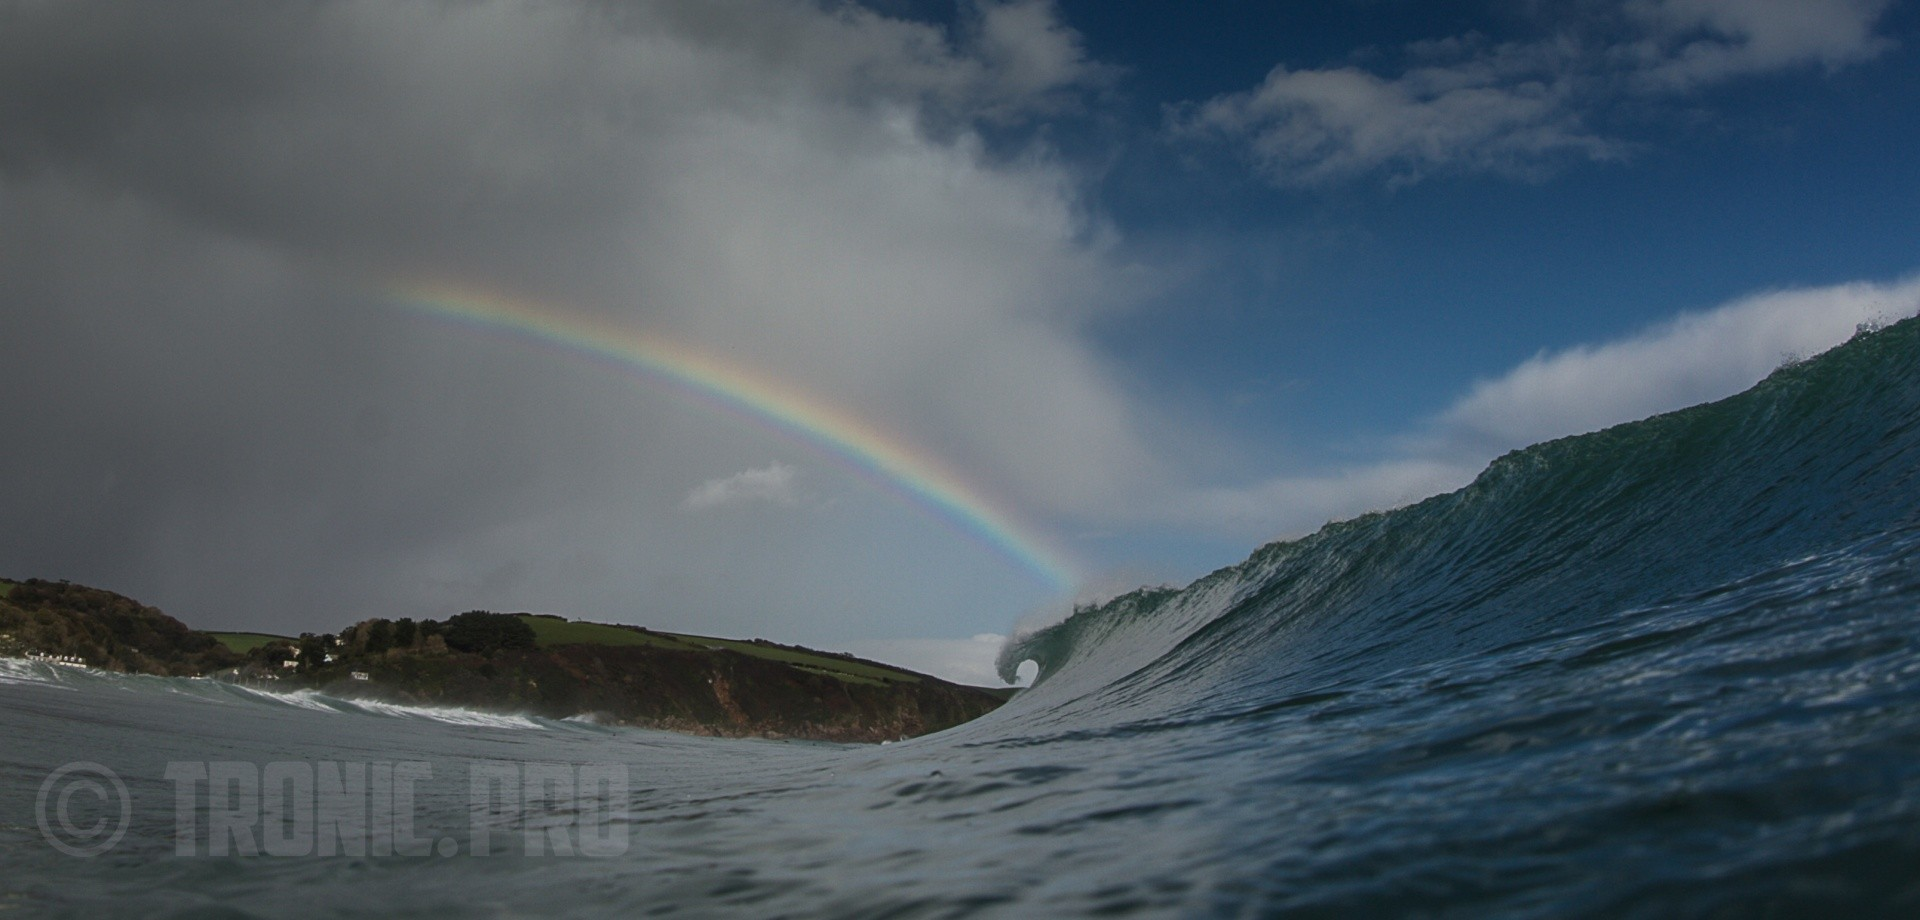 Tronic Pro's photo of Pentewan